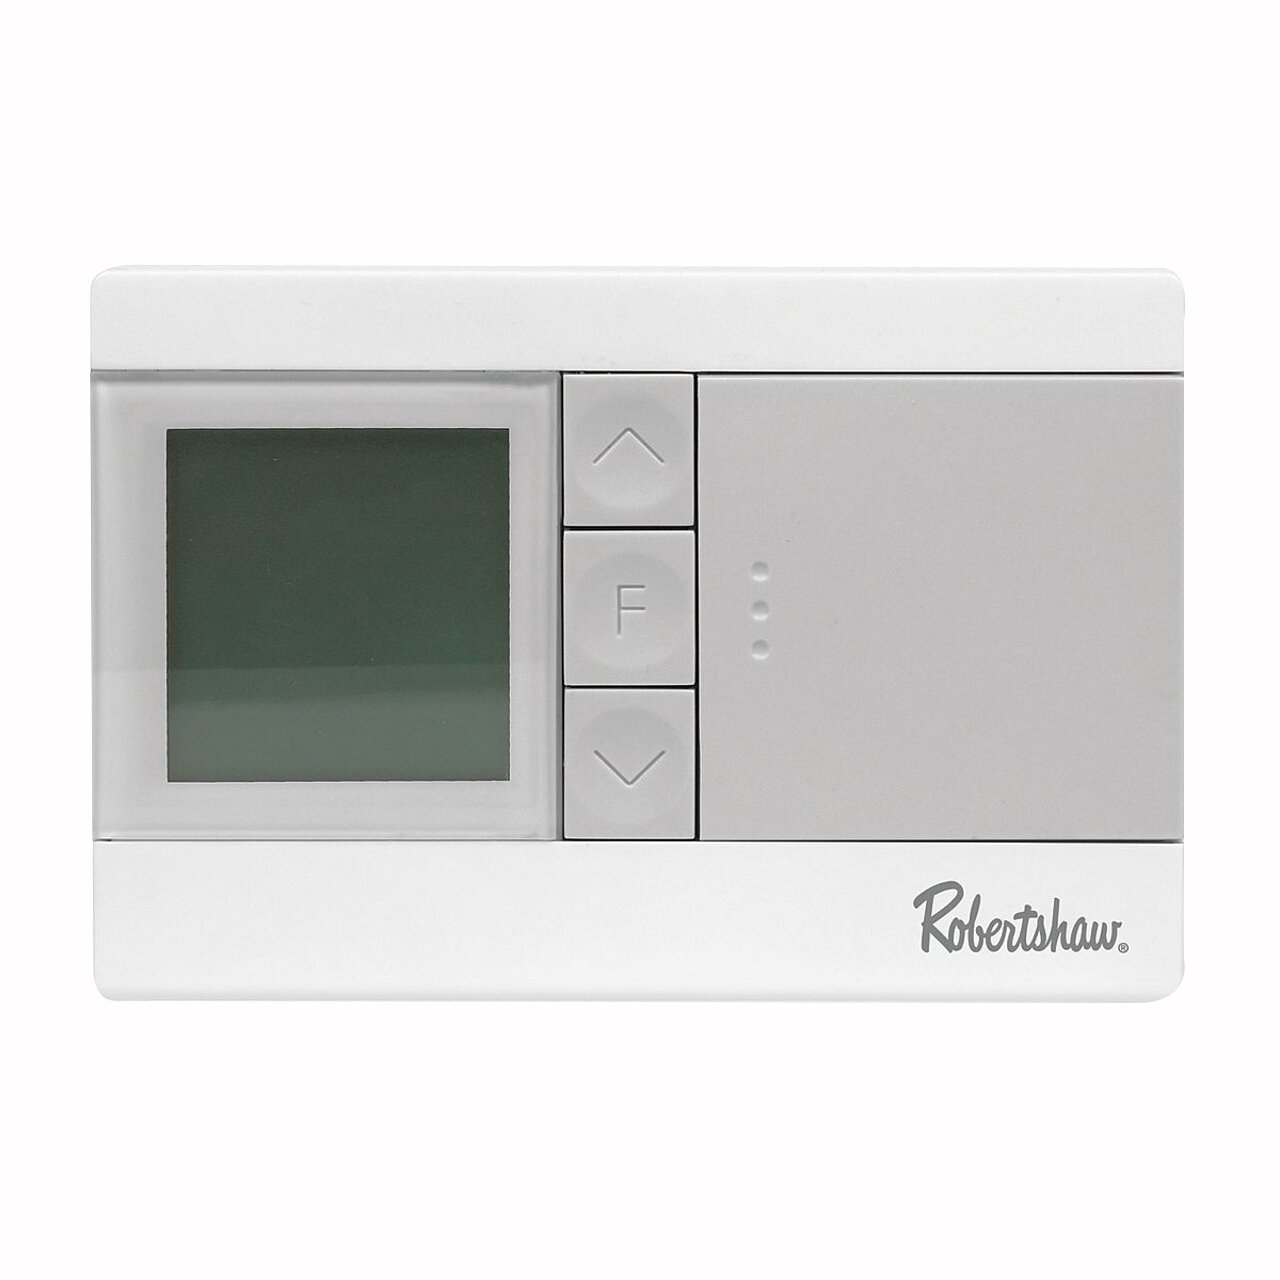 PS2210 2 Heat/1 Cool Digital Non-Programmable Thermostat